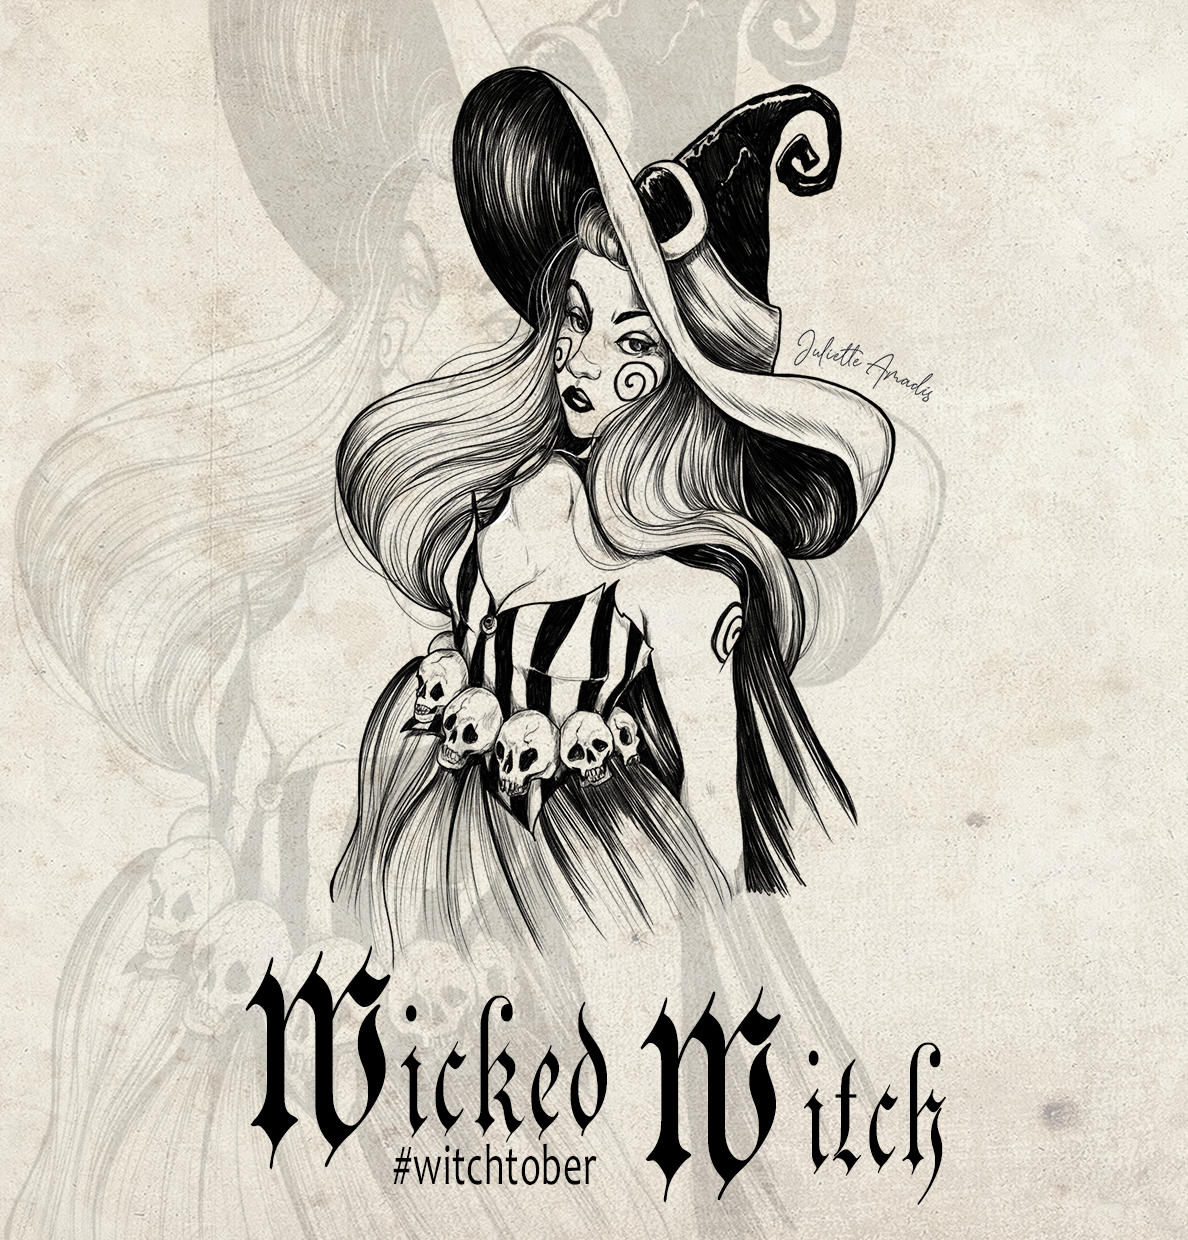 Witchtober 03 - Wicked Witch